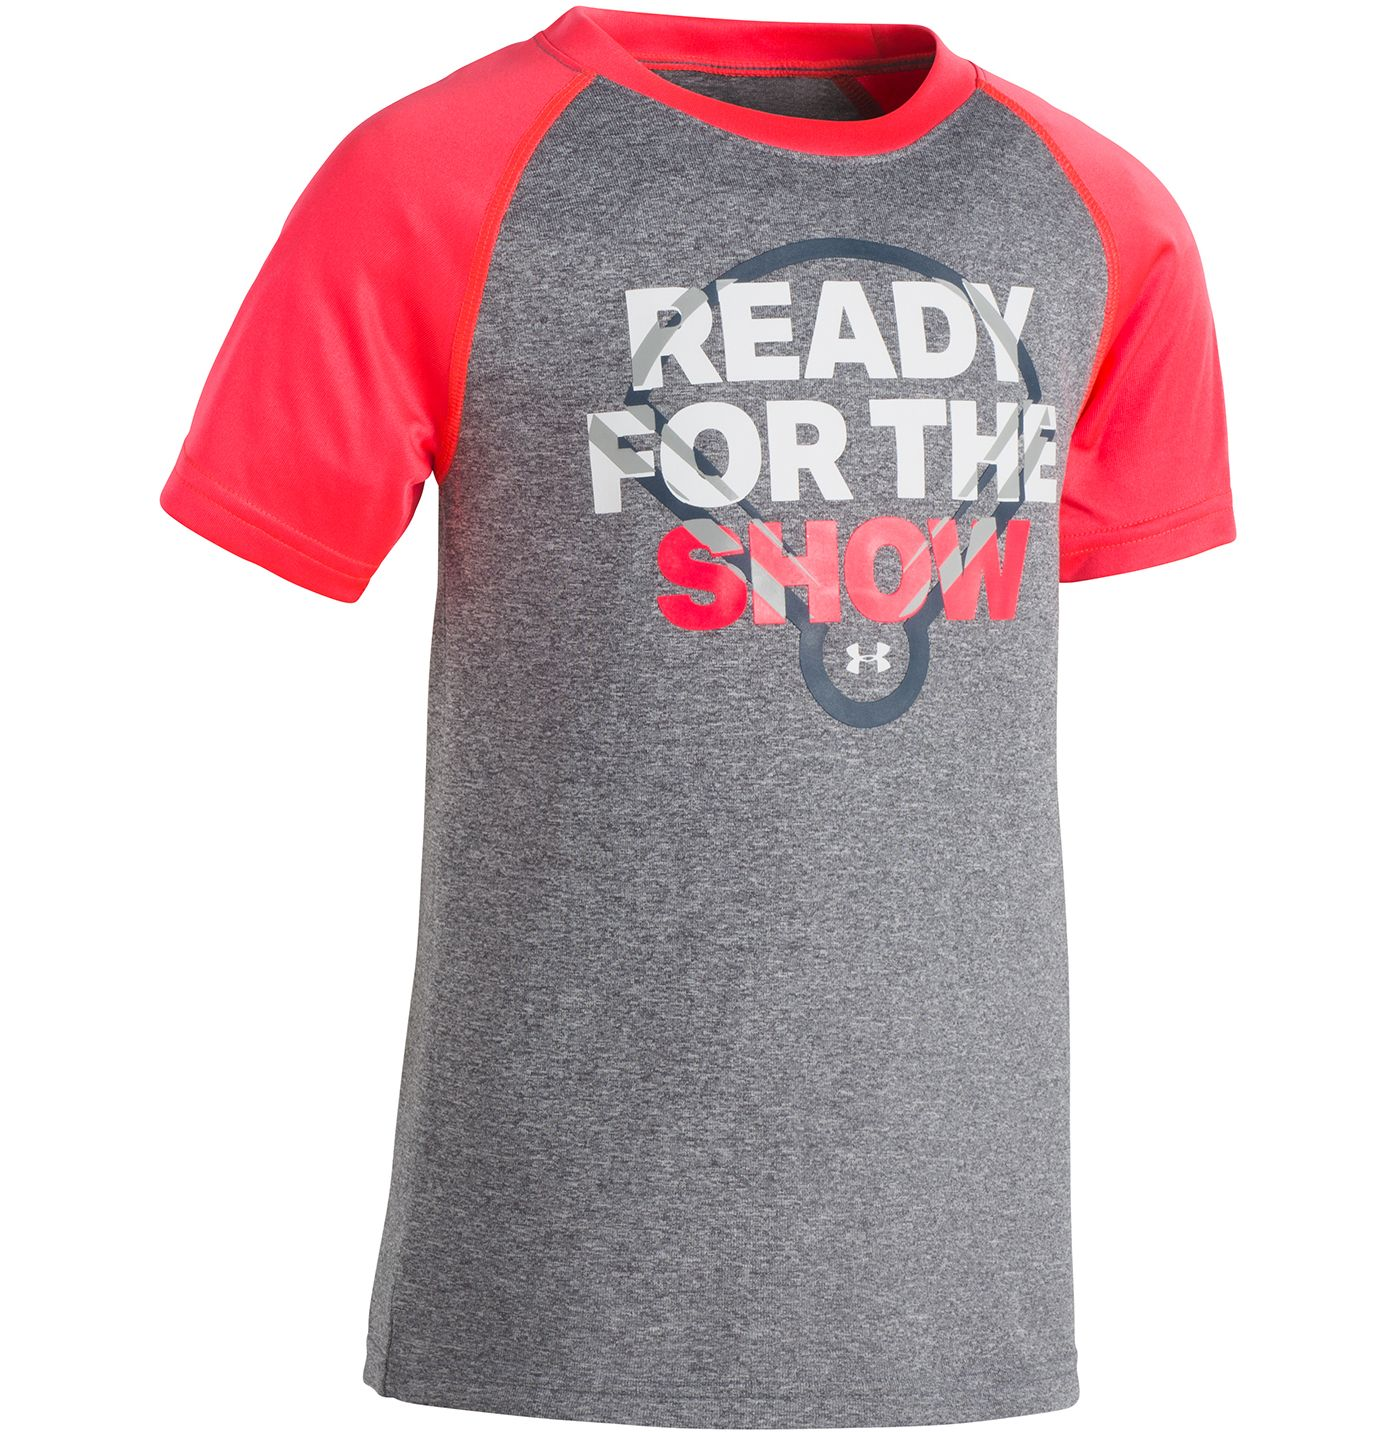 Under Armour Little Boys' Ready For The Show Graphic Baseball T-Shirt